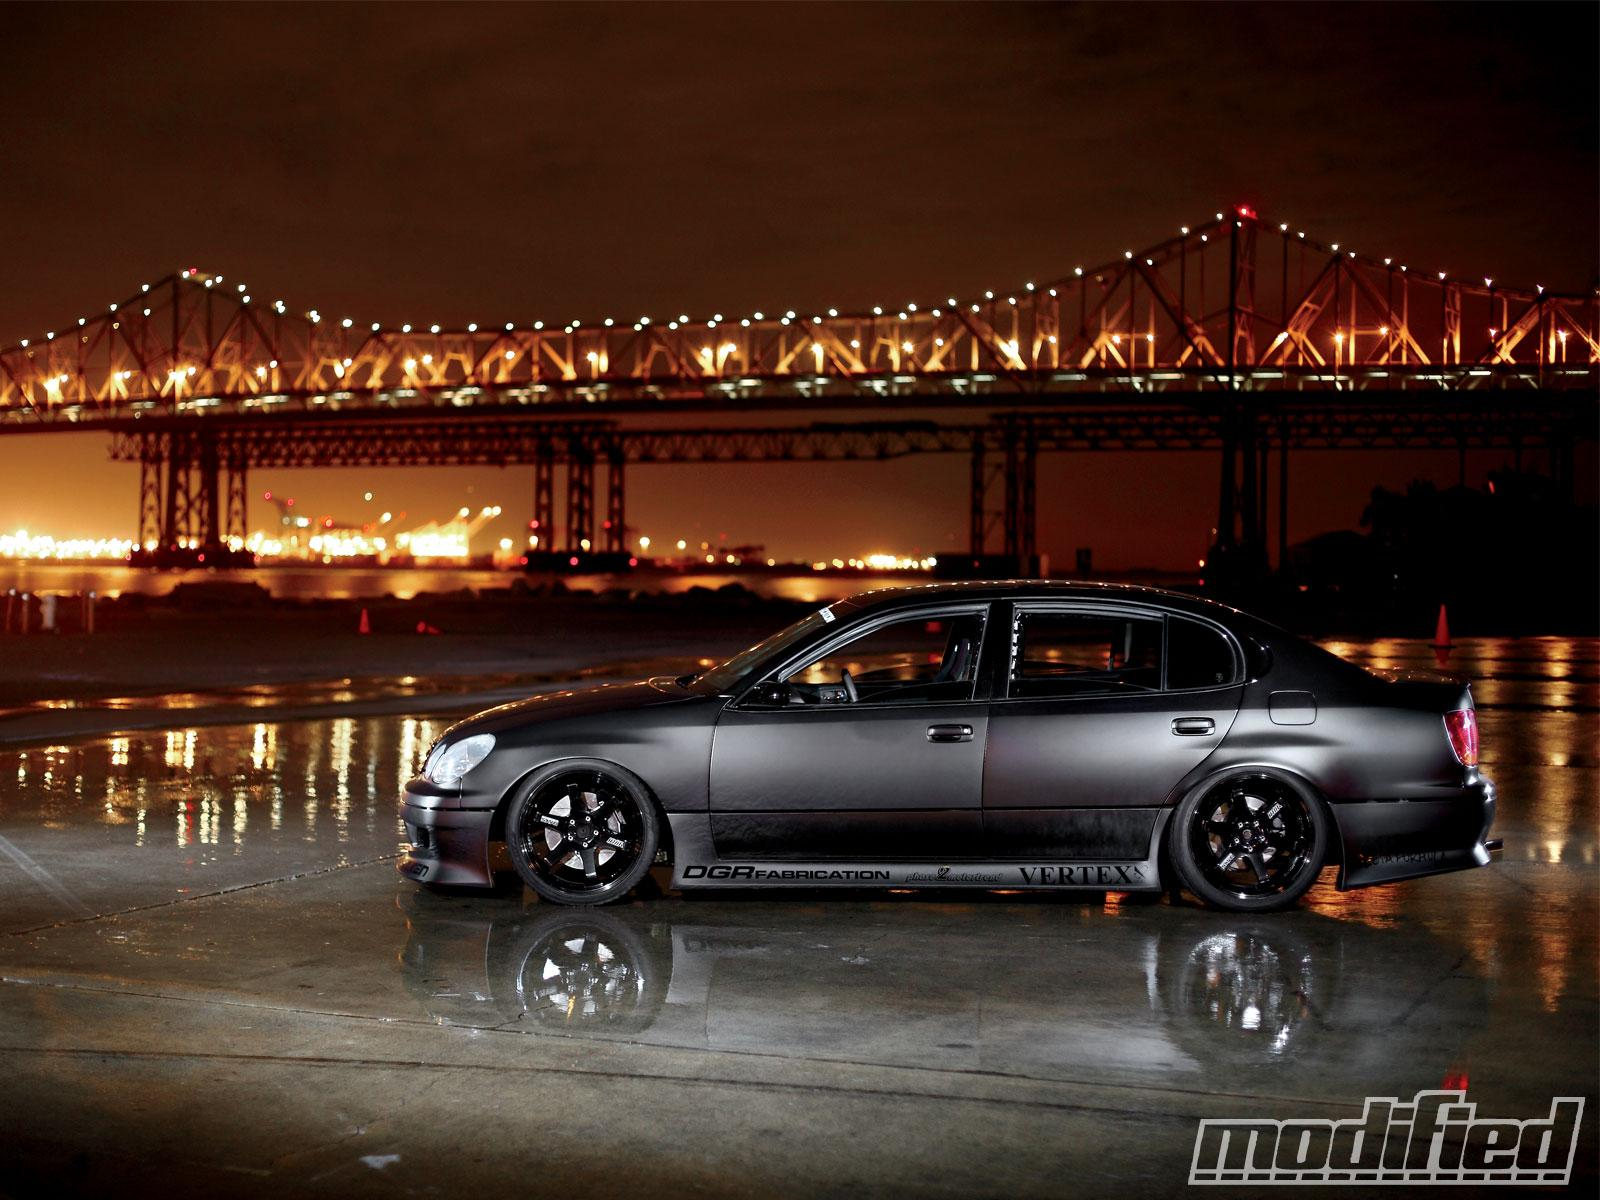 2000 Lexus Gs 300 Information And Photos Zombiedrive Fuse Box For 1993 800 1024 1280 1600 Origin